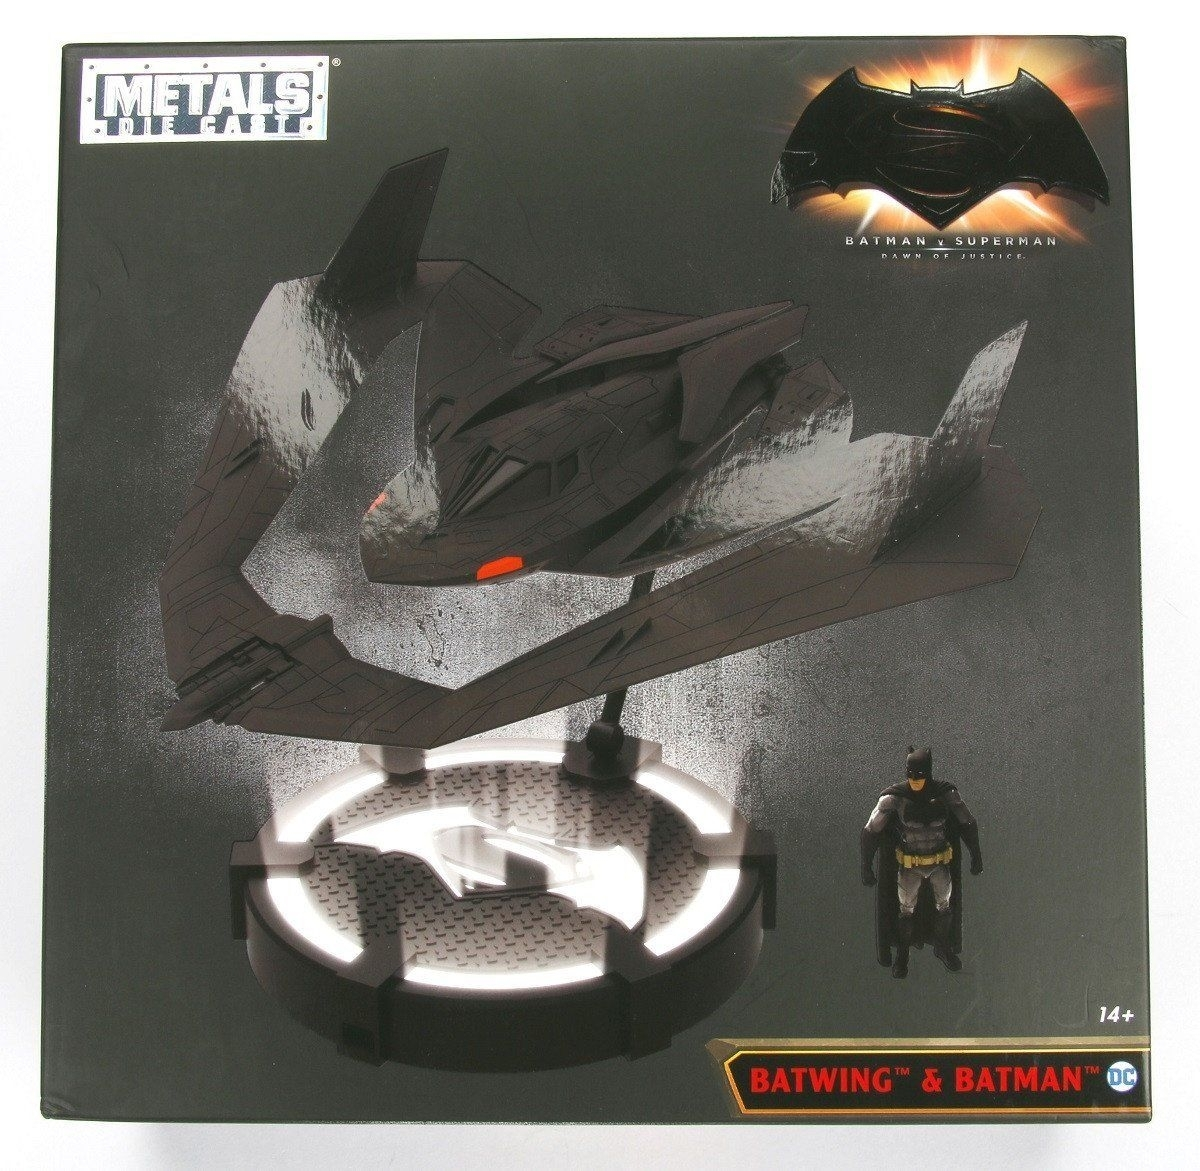 Batwing & Batman Batman v Superman Metal die Cast Jada Toys